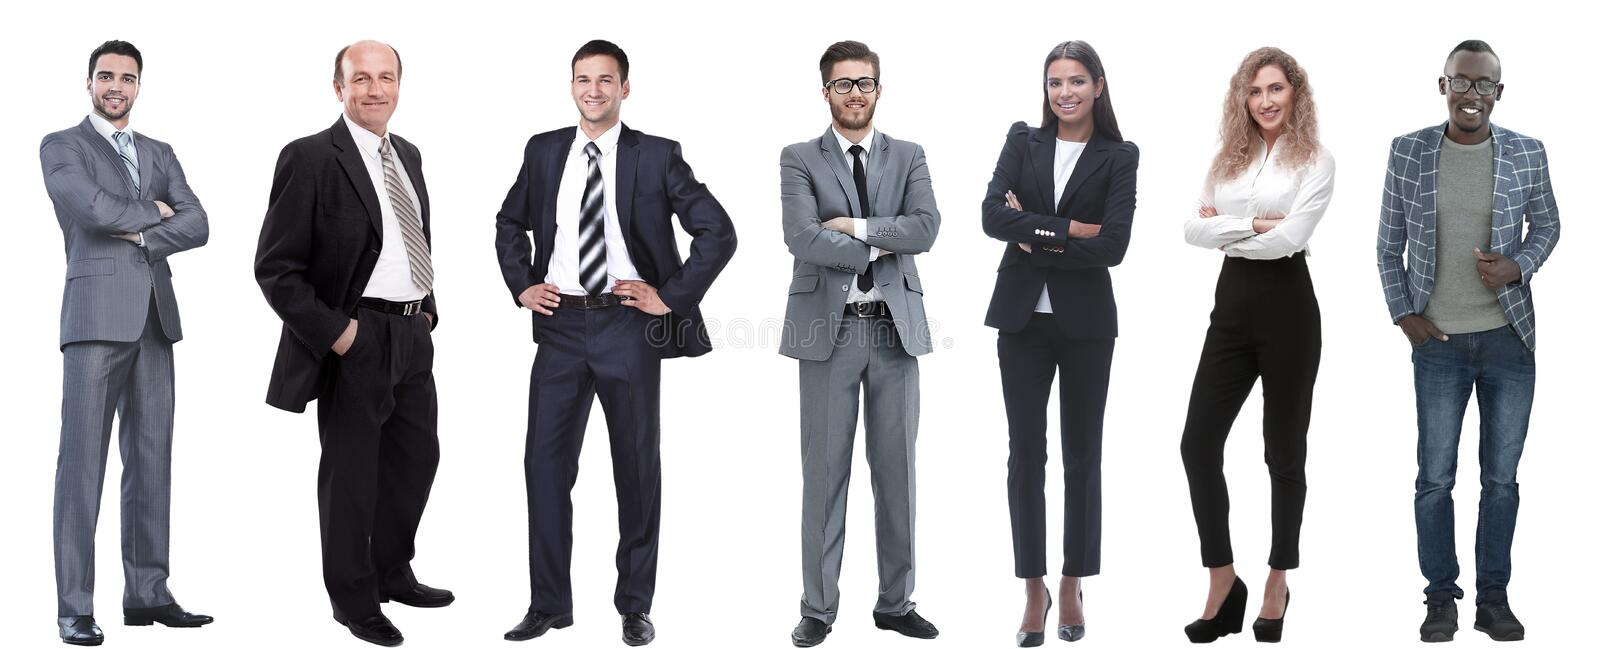 Collage of a variety of business people standing in a row stock images